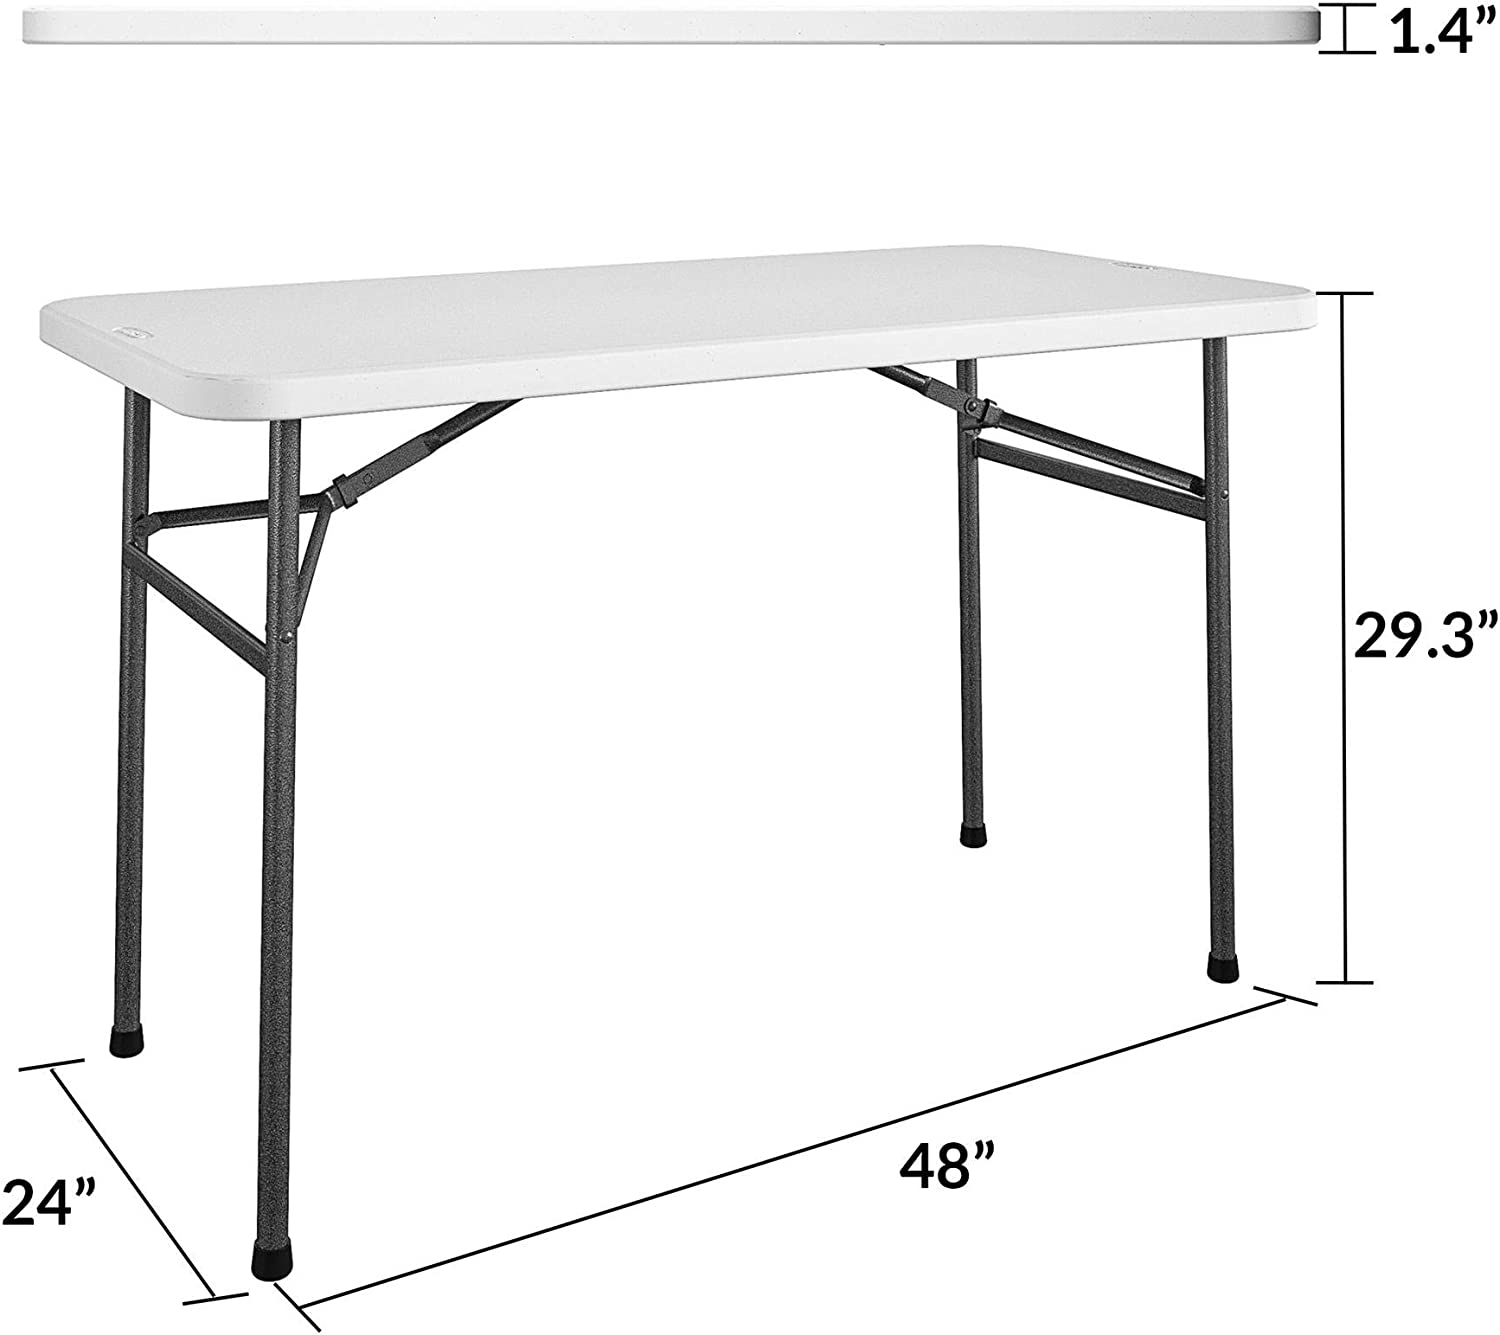 Costway 4ft Camping and Utility Folding Table Height Adjustable Indoor Outdoor